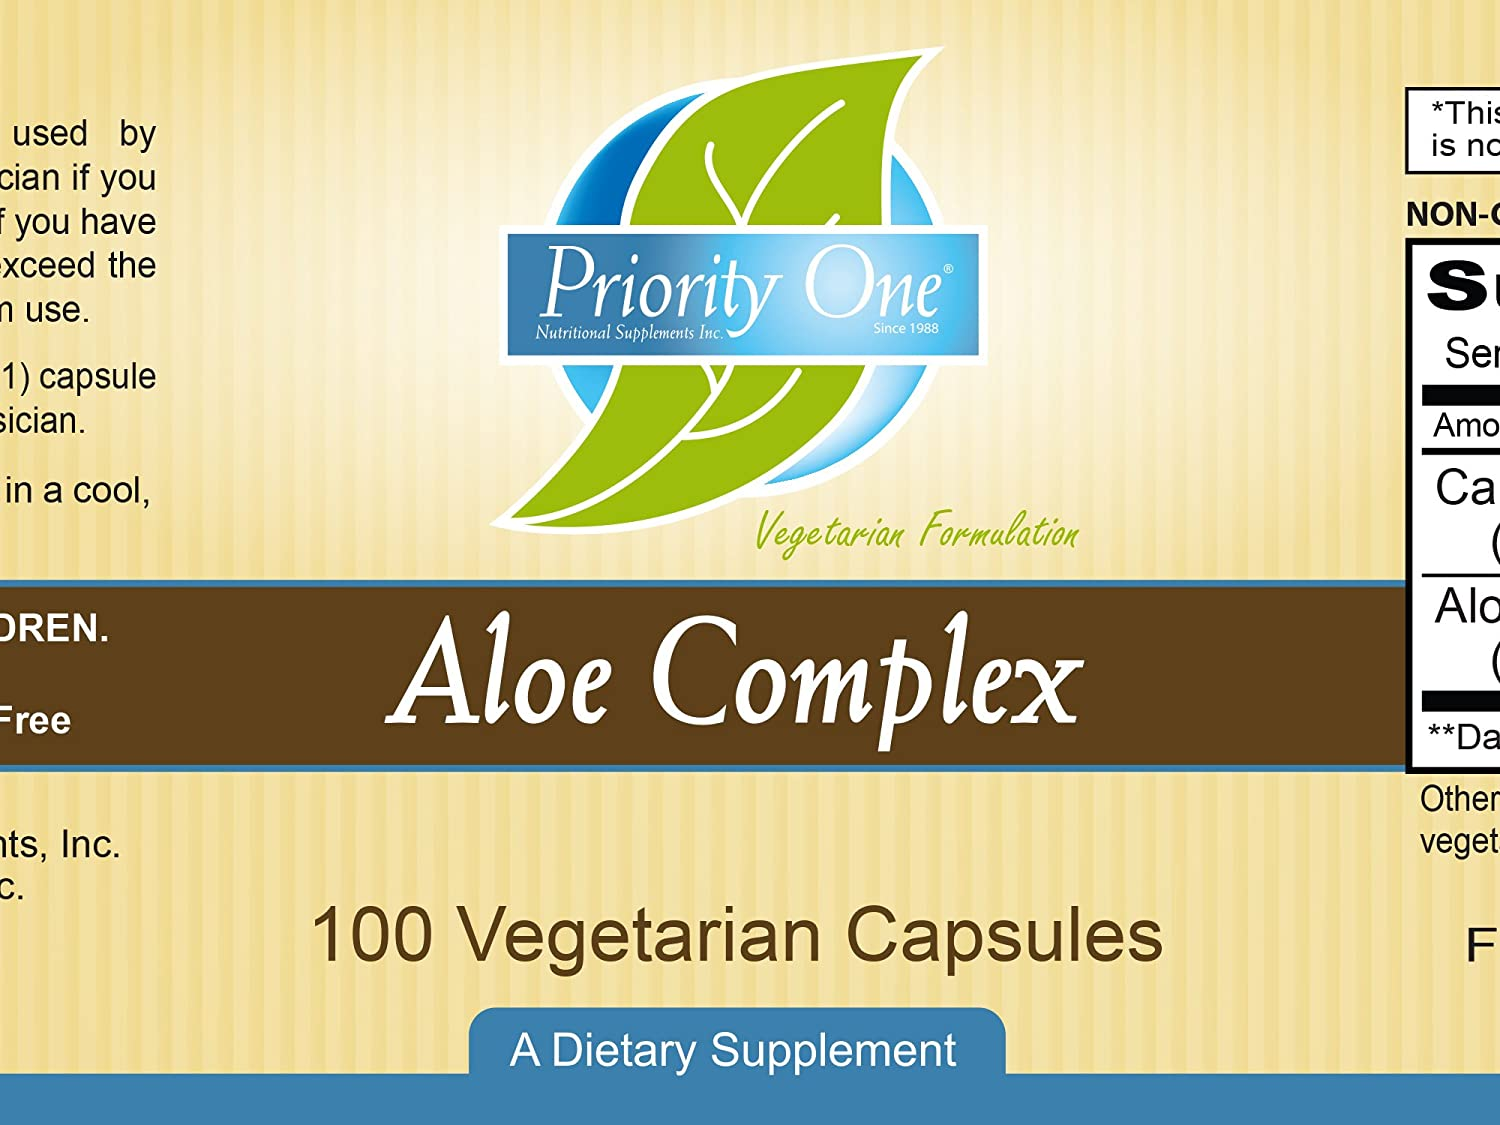 Priority One Vitamins Aloe Complex 100 Vegetarian Capsules Wild Crafted Cape Aloe Aloe ferox and a 200 1 Leaf Gum Extract of Aloe Vera